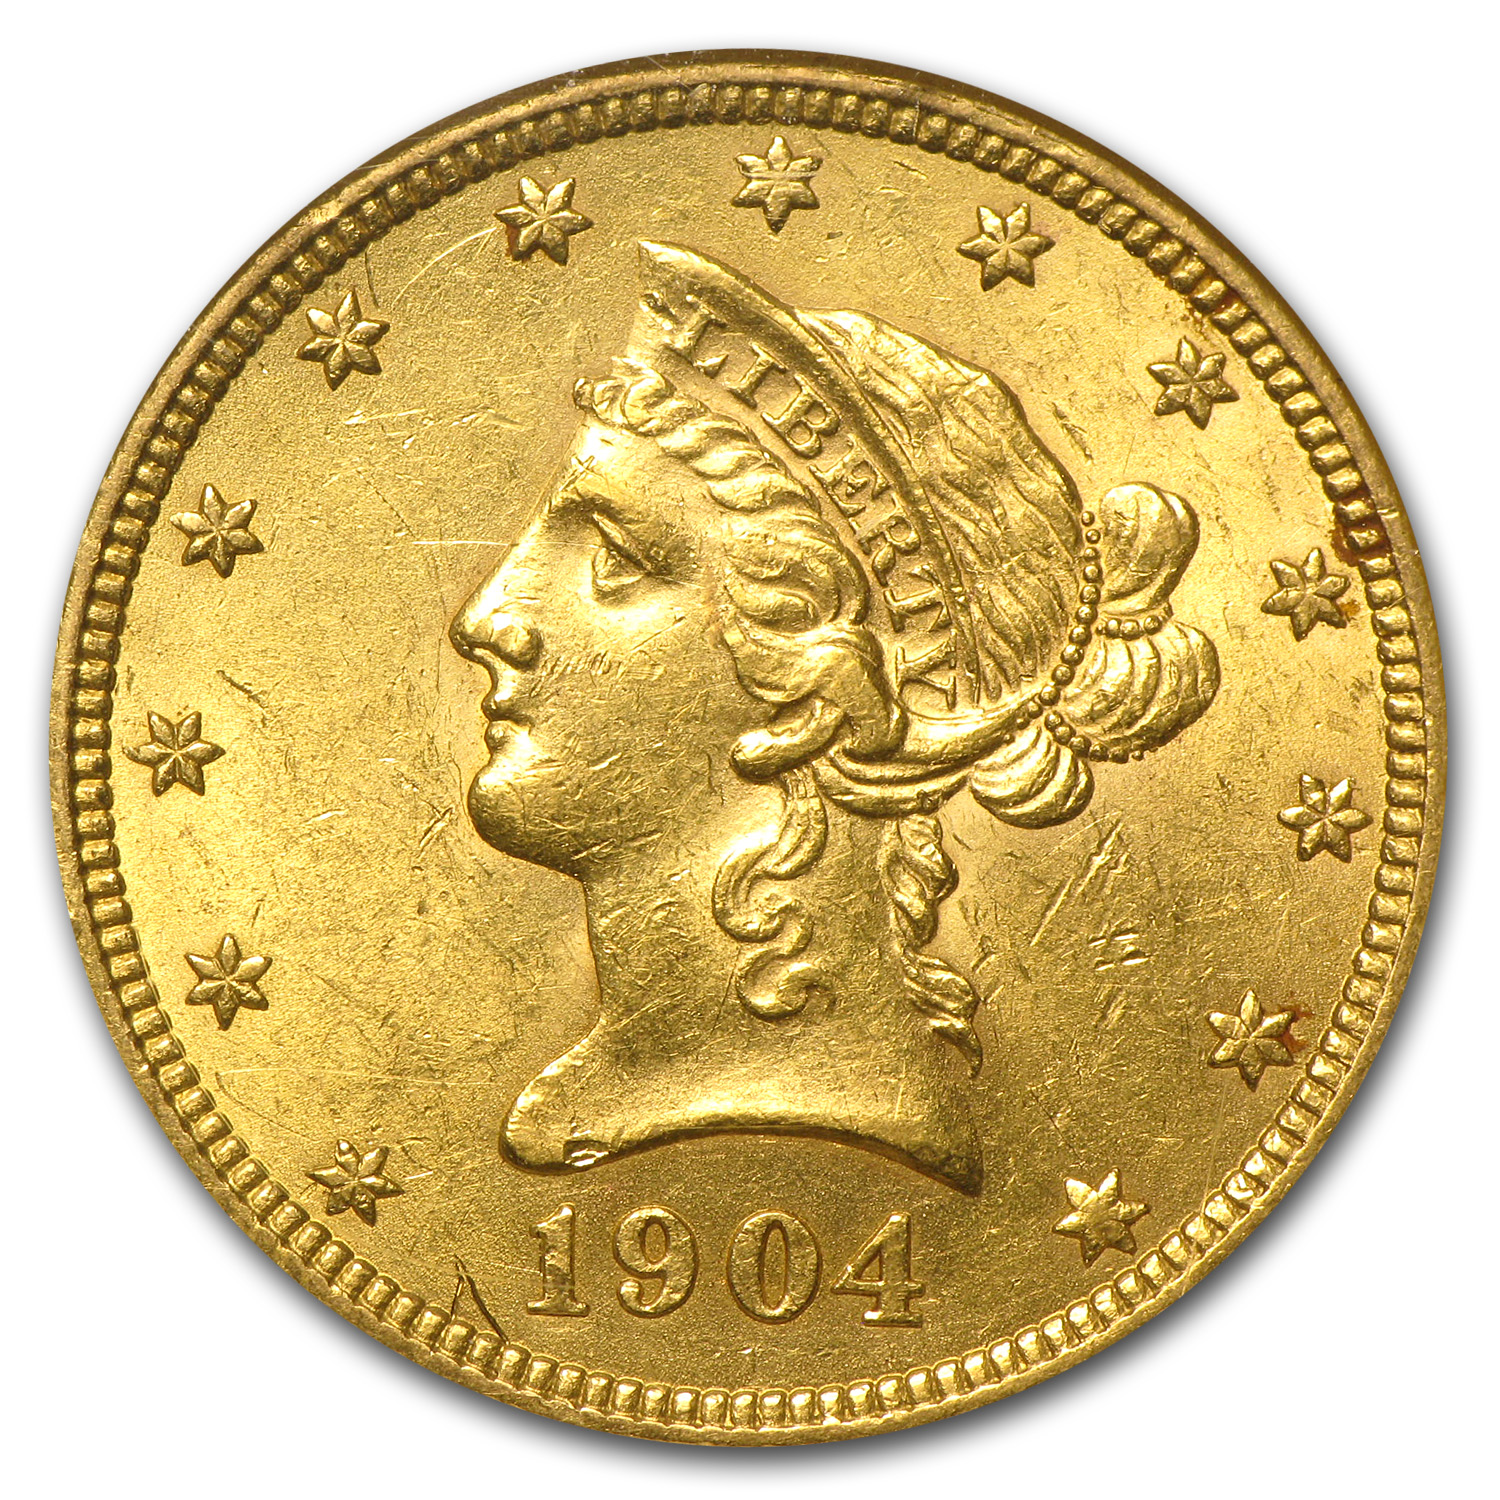 1904-O $10 Liberty Gold Eagle - AU-58 NGC